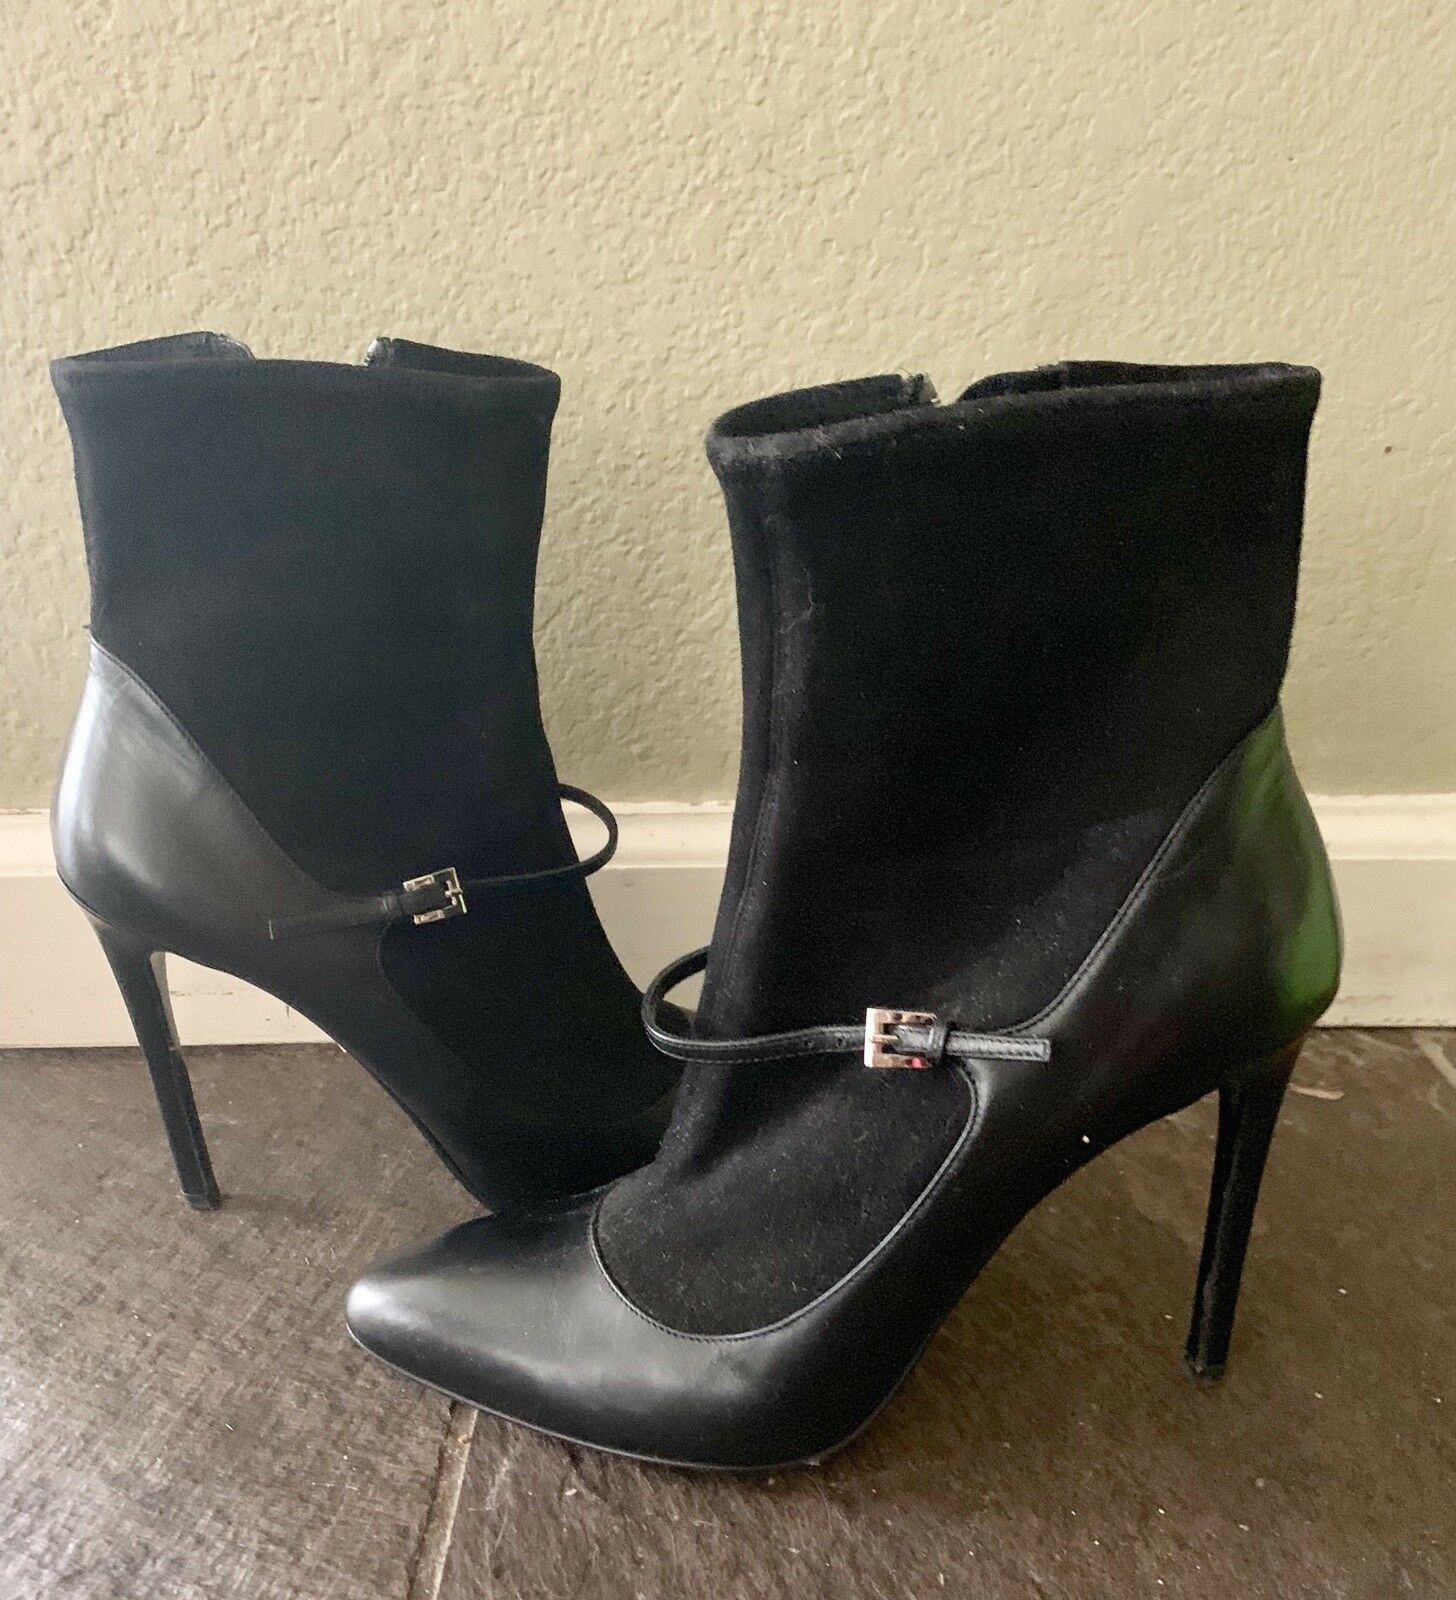 Stunning Sock Stiefel Stiefel Stiefel By Prada 39.5 - Check It Out b4c58e